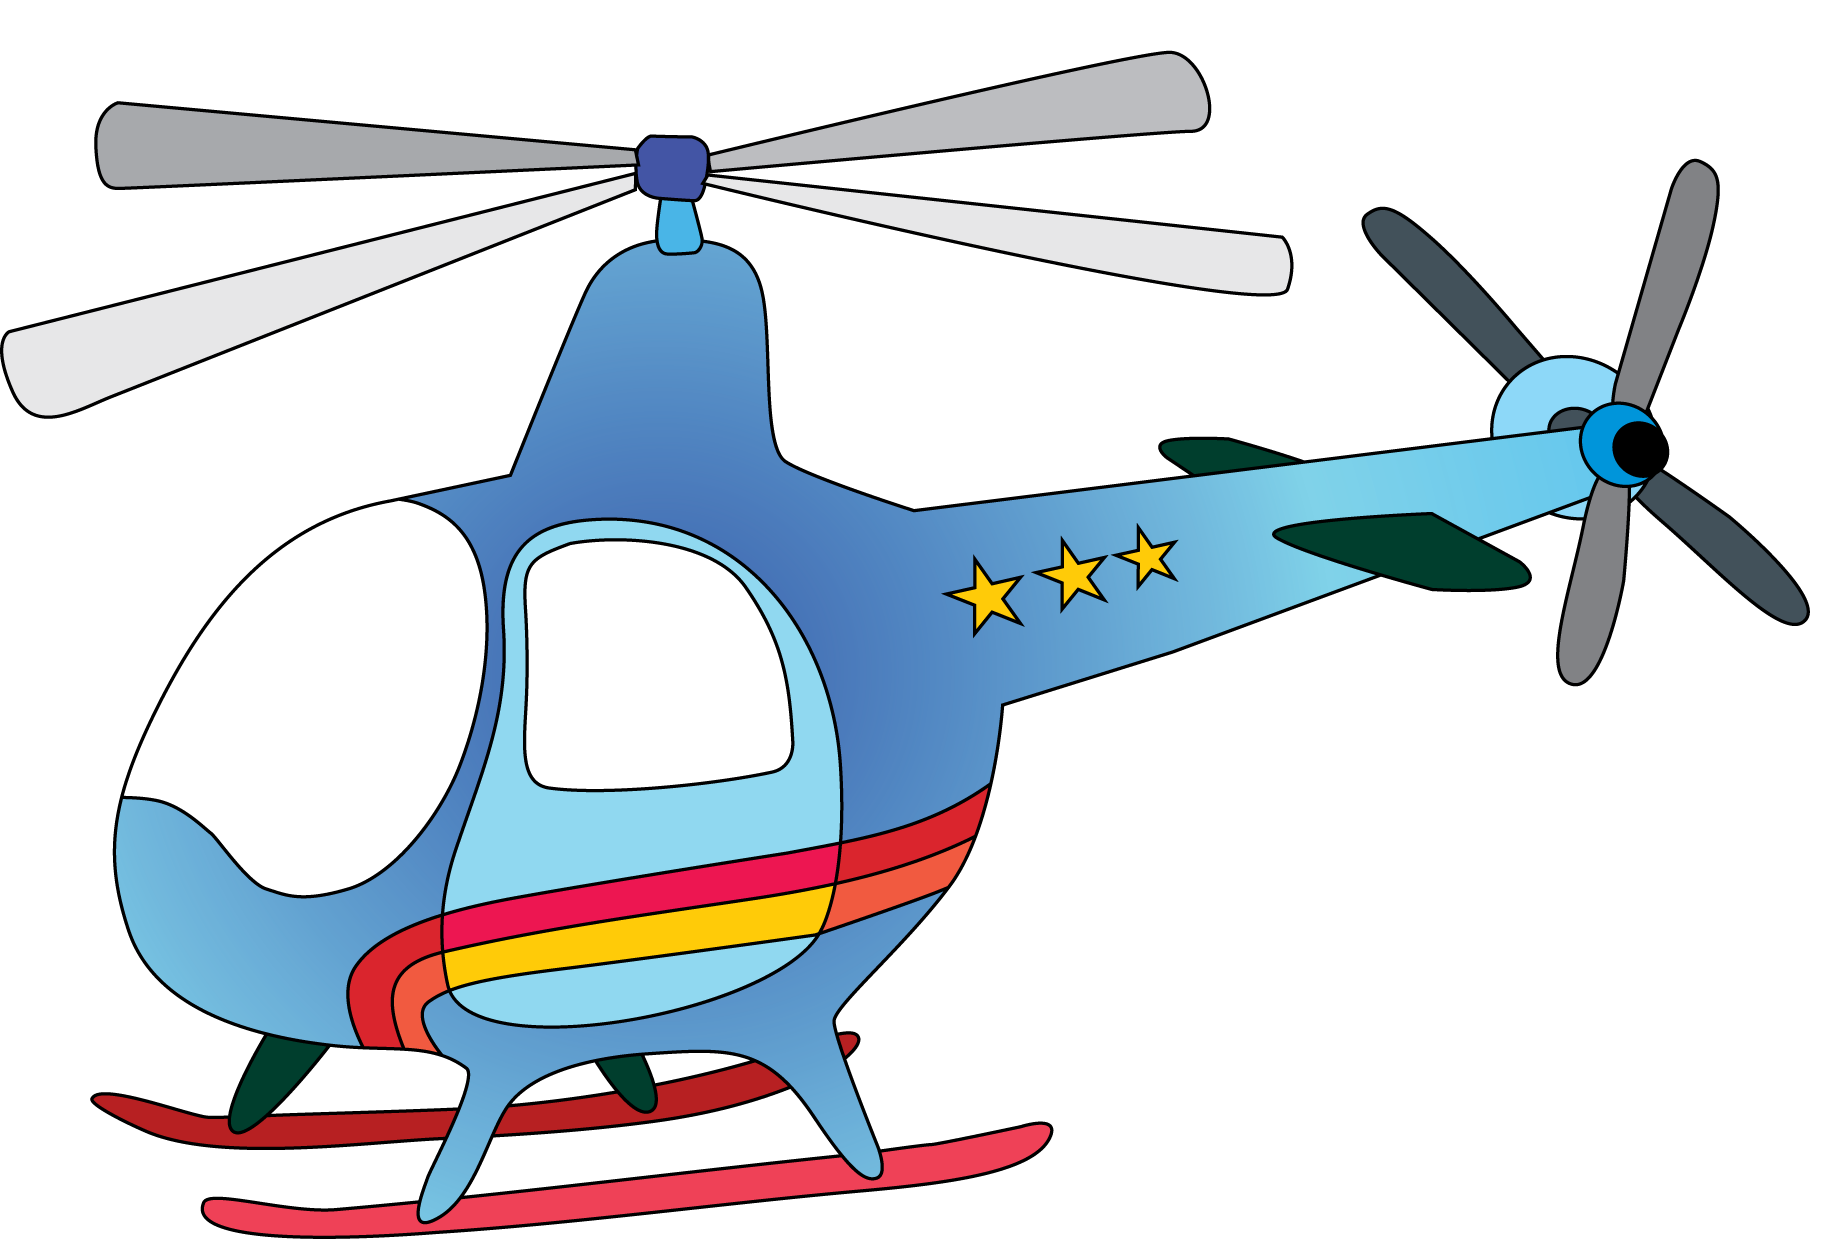 Helicopter clipart - Clipground for Helicopter Clipart Black And White  183qdu